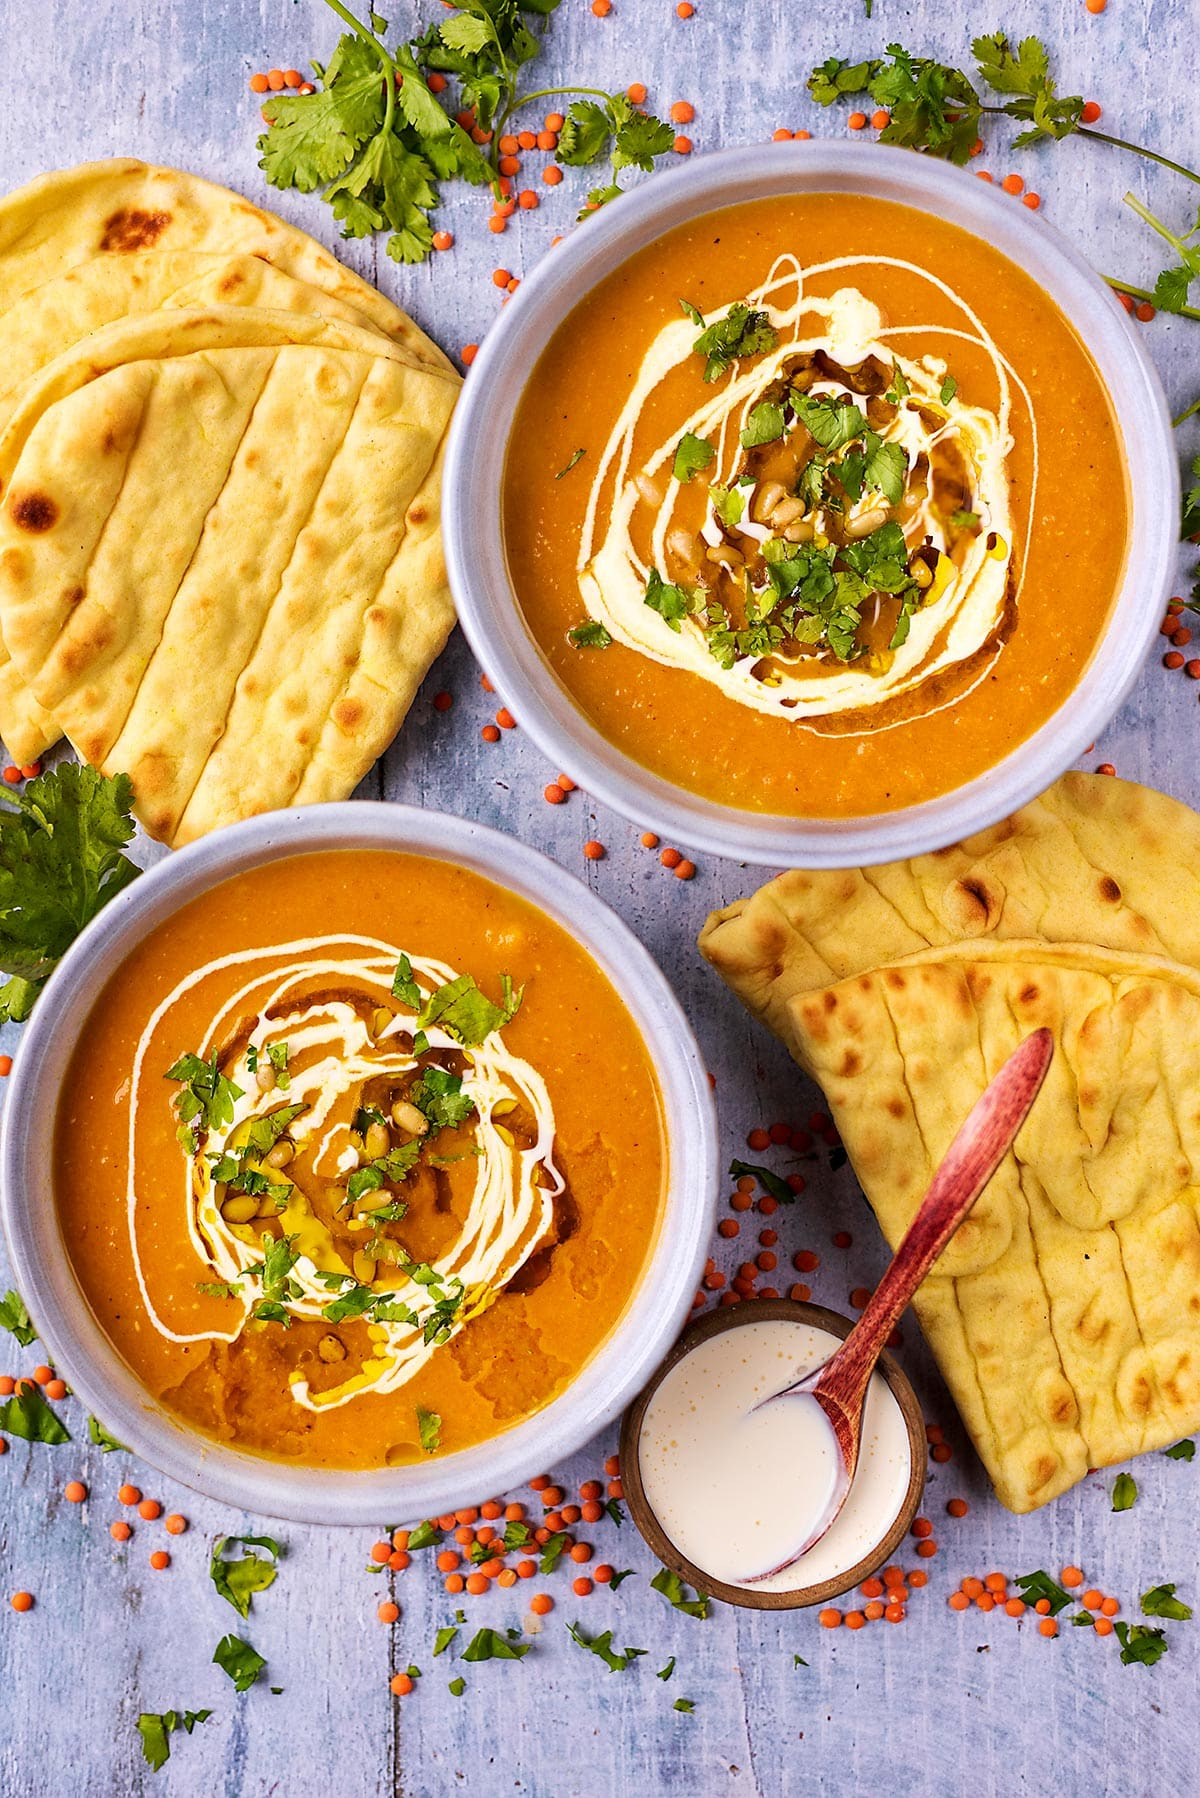 Two bowls of carrot and lentil soup next to some flatbreads and a small bowl of cream